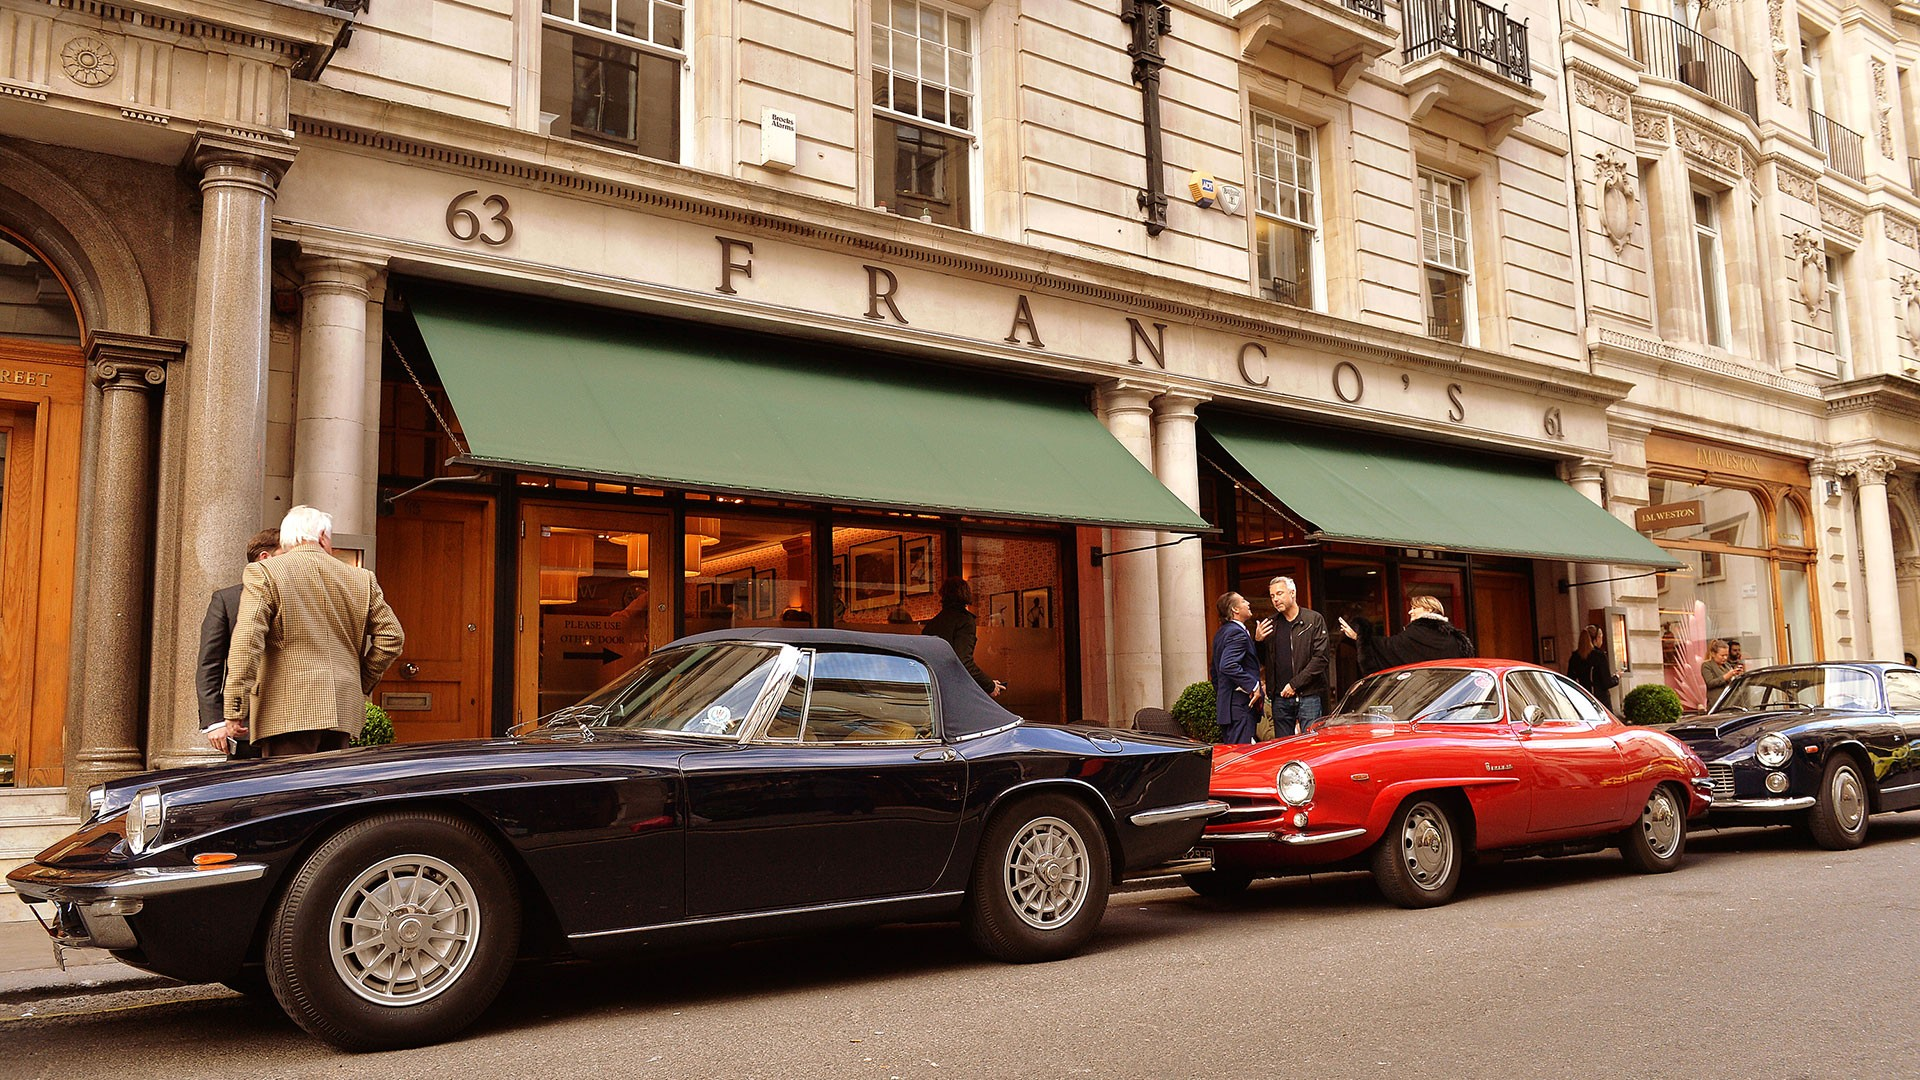 The exterior of Franco's in Jermyn Street